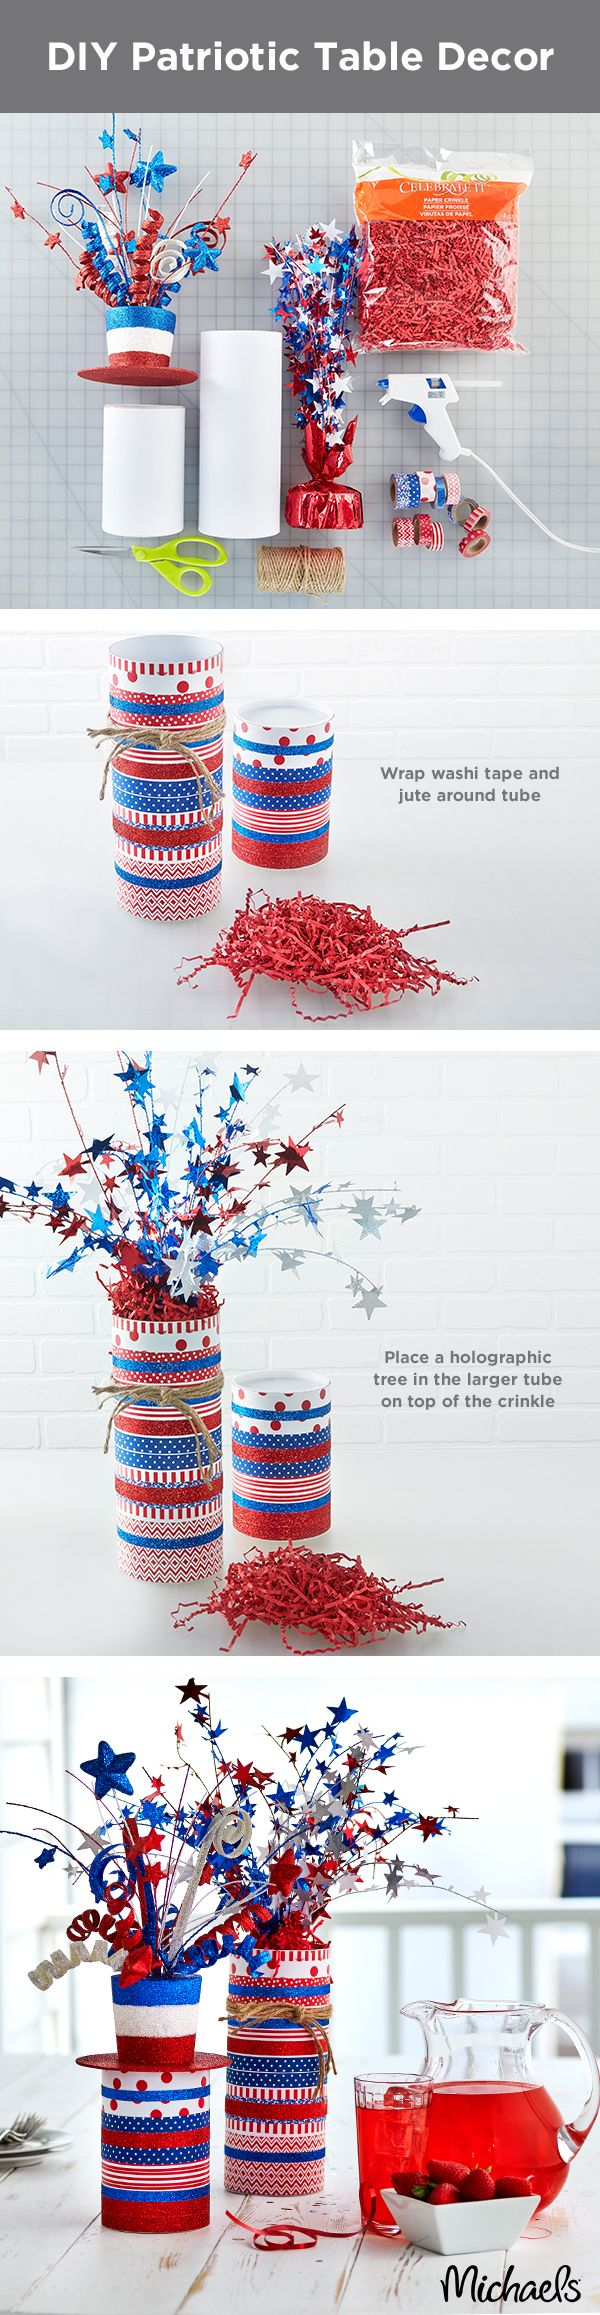 Liven up your 4th of July party with firecracker table décor in three easy steps. Start by wrapping washi tape around the outside of a packing tube. Add jute cording around the tube and tie off. To finish, fill the tube with a holographic tree or patriotic florals for a simple, yet festive centerpiece for your holiday party.